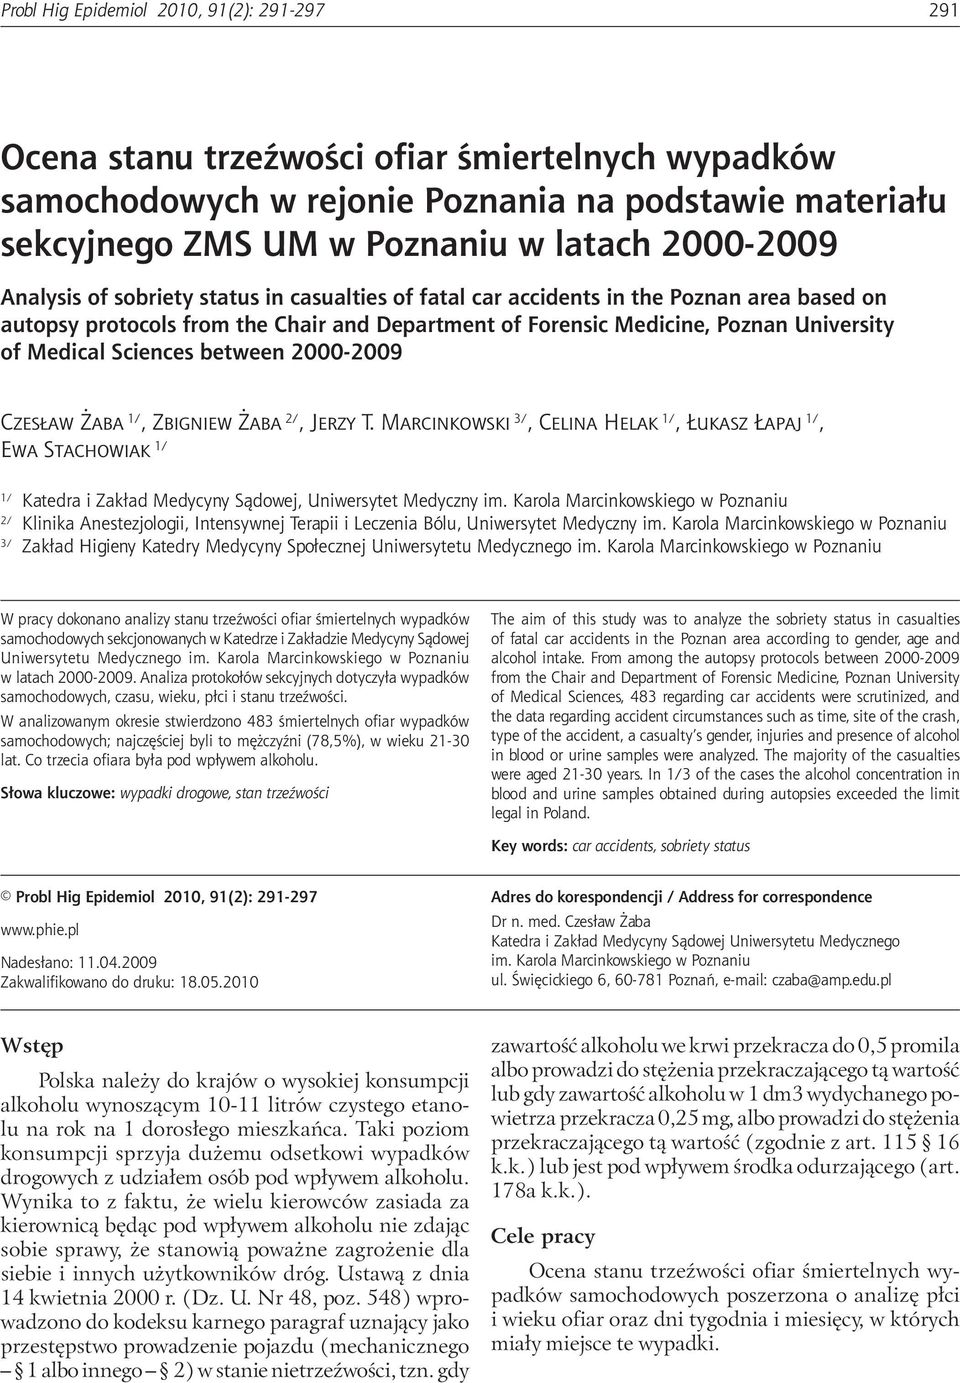 casualties of fatal car accidents in the Poznan area based on autopsy protocols from the Chair and Department of Forensic Medicine, Poznan University of Medical Sciences between 2000-2009 Czesław